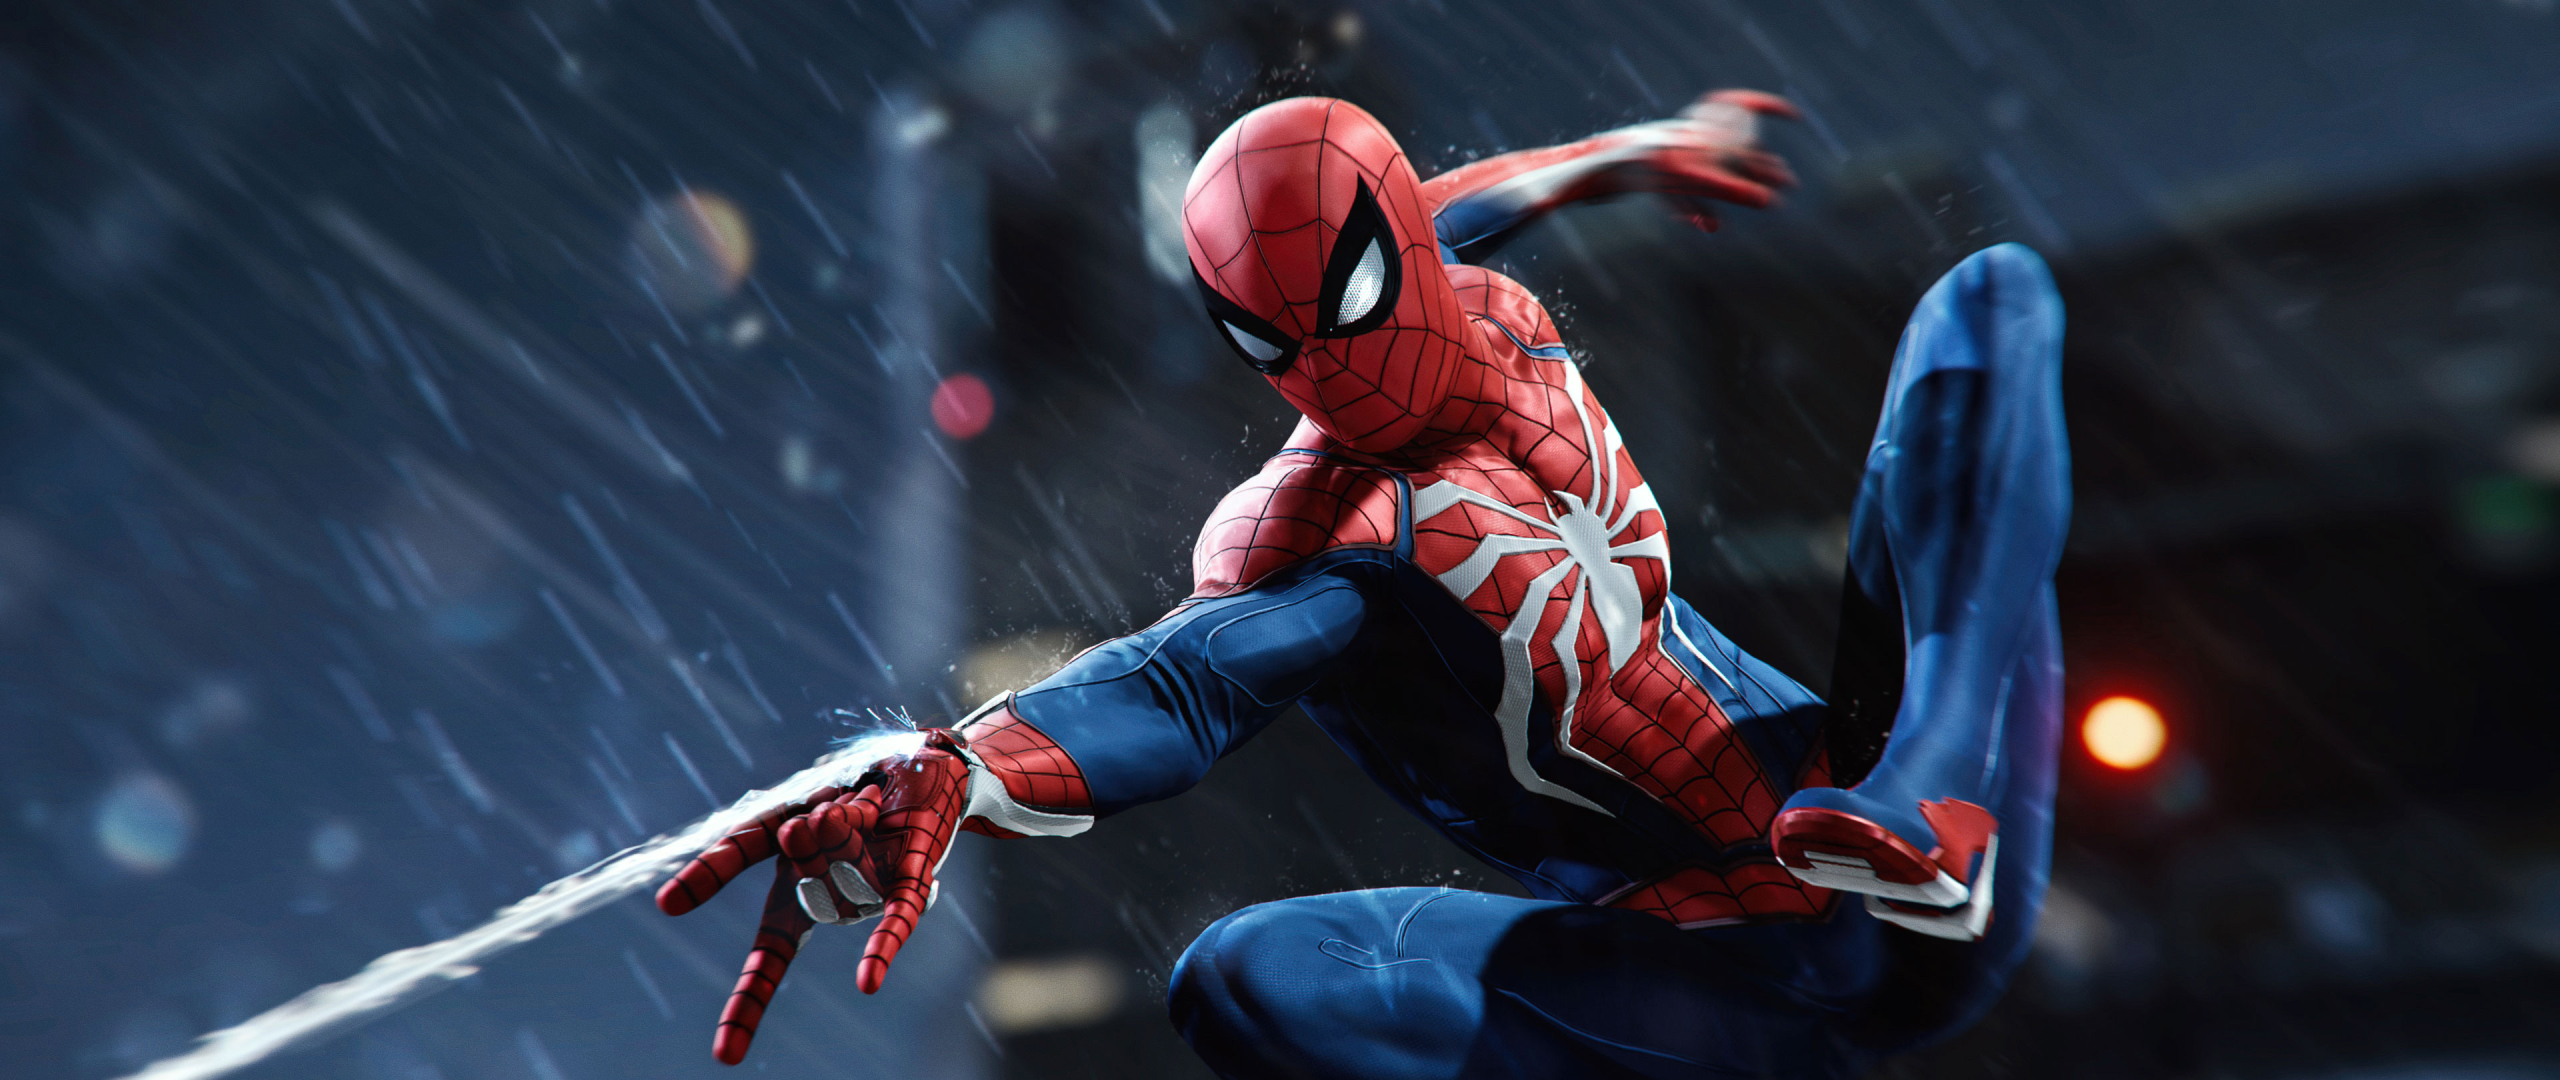 Spider Man Image Download: Spider-man Ps4 2018, HD 4K Wallpaper